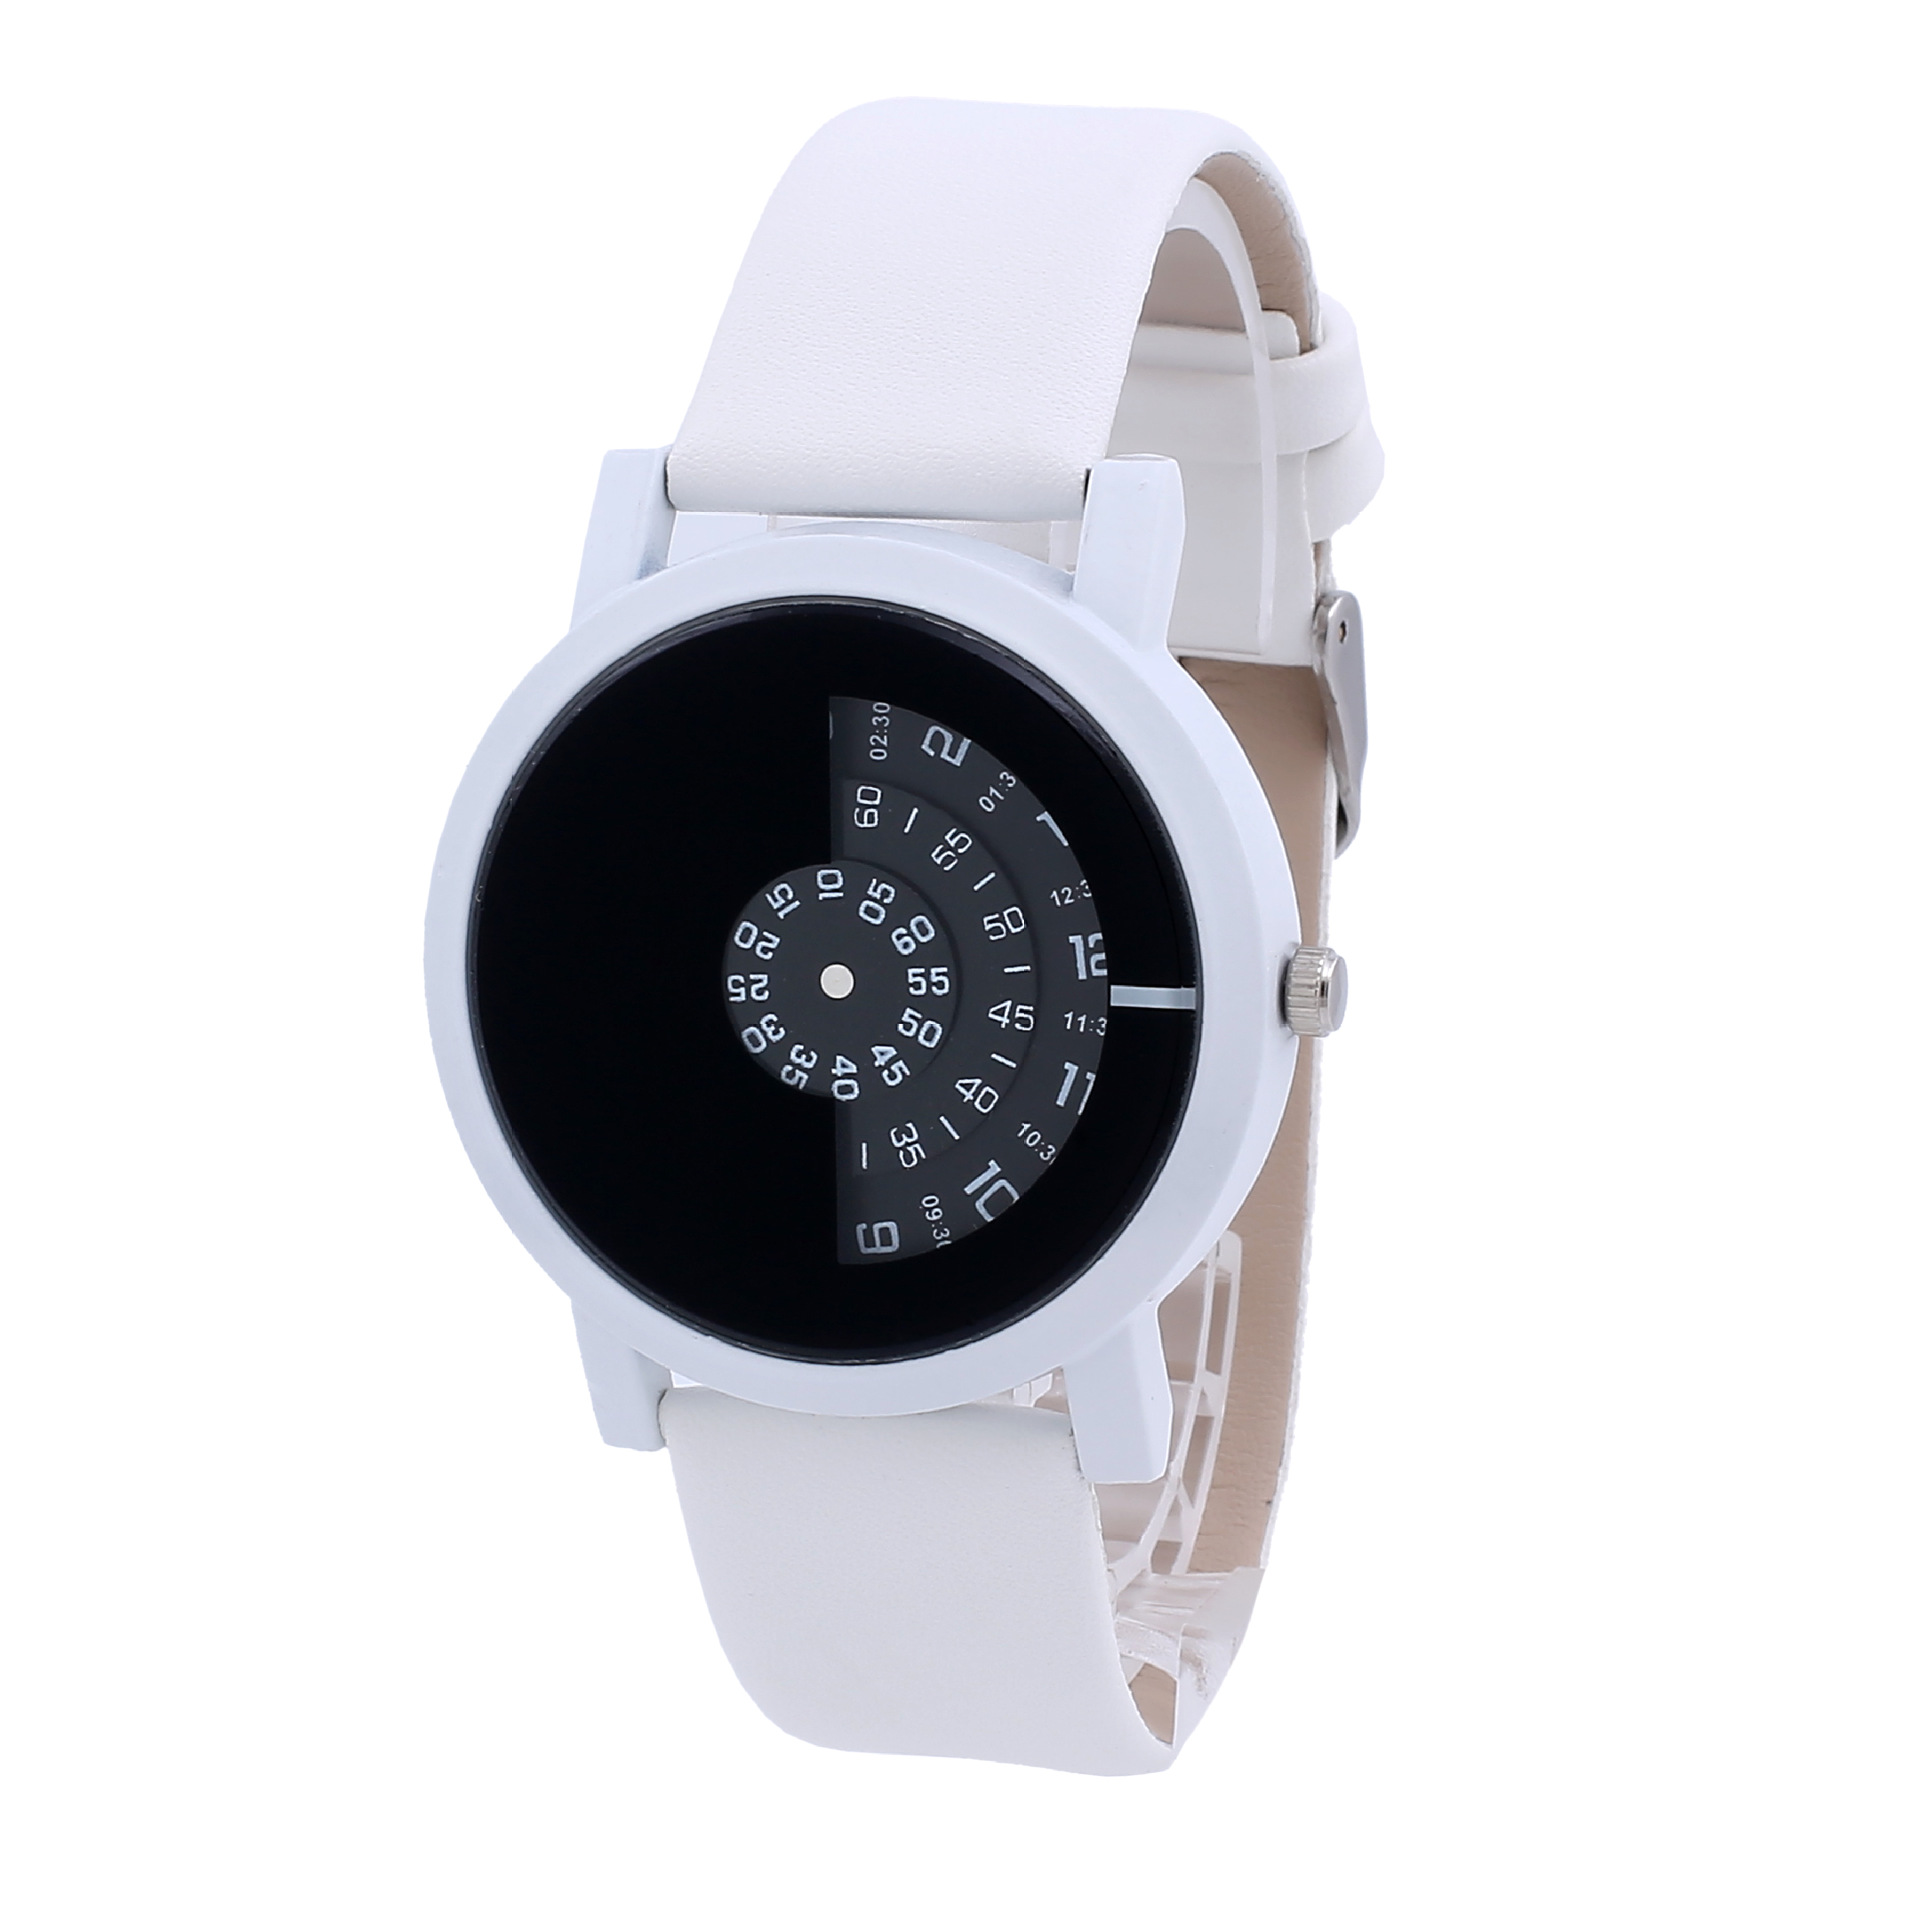 new watch hardlex retail sports arrival time watches plastic product promotion unisex fashion zone